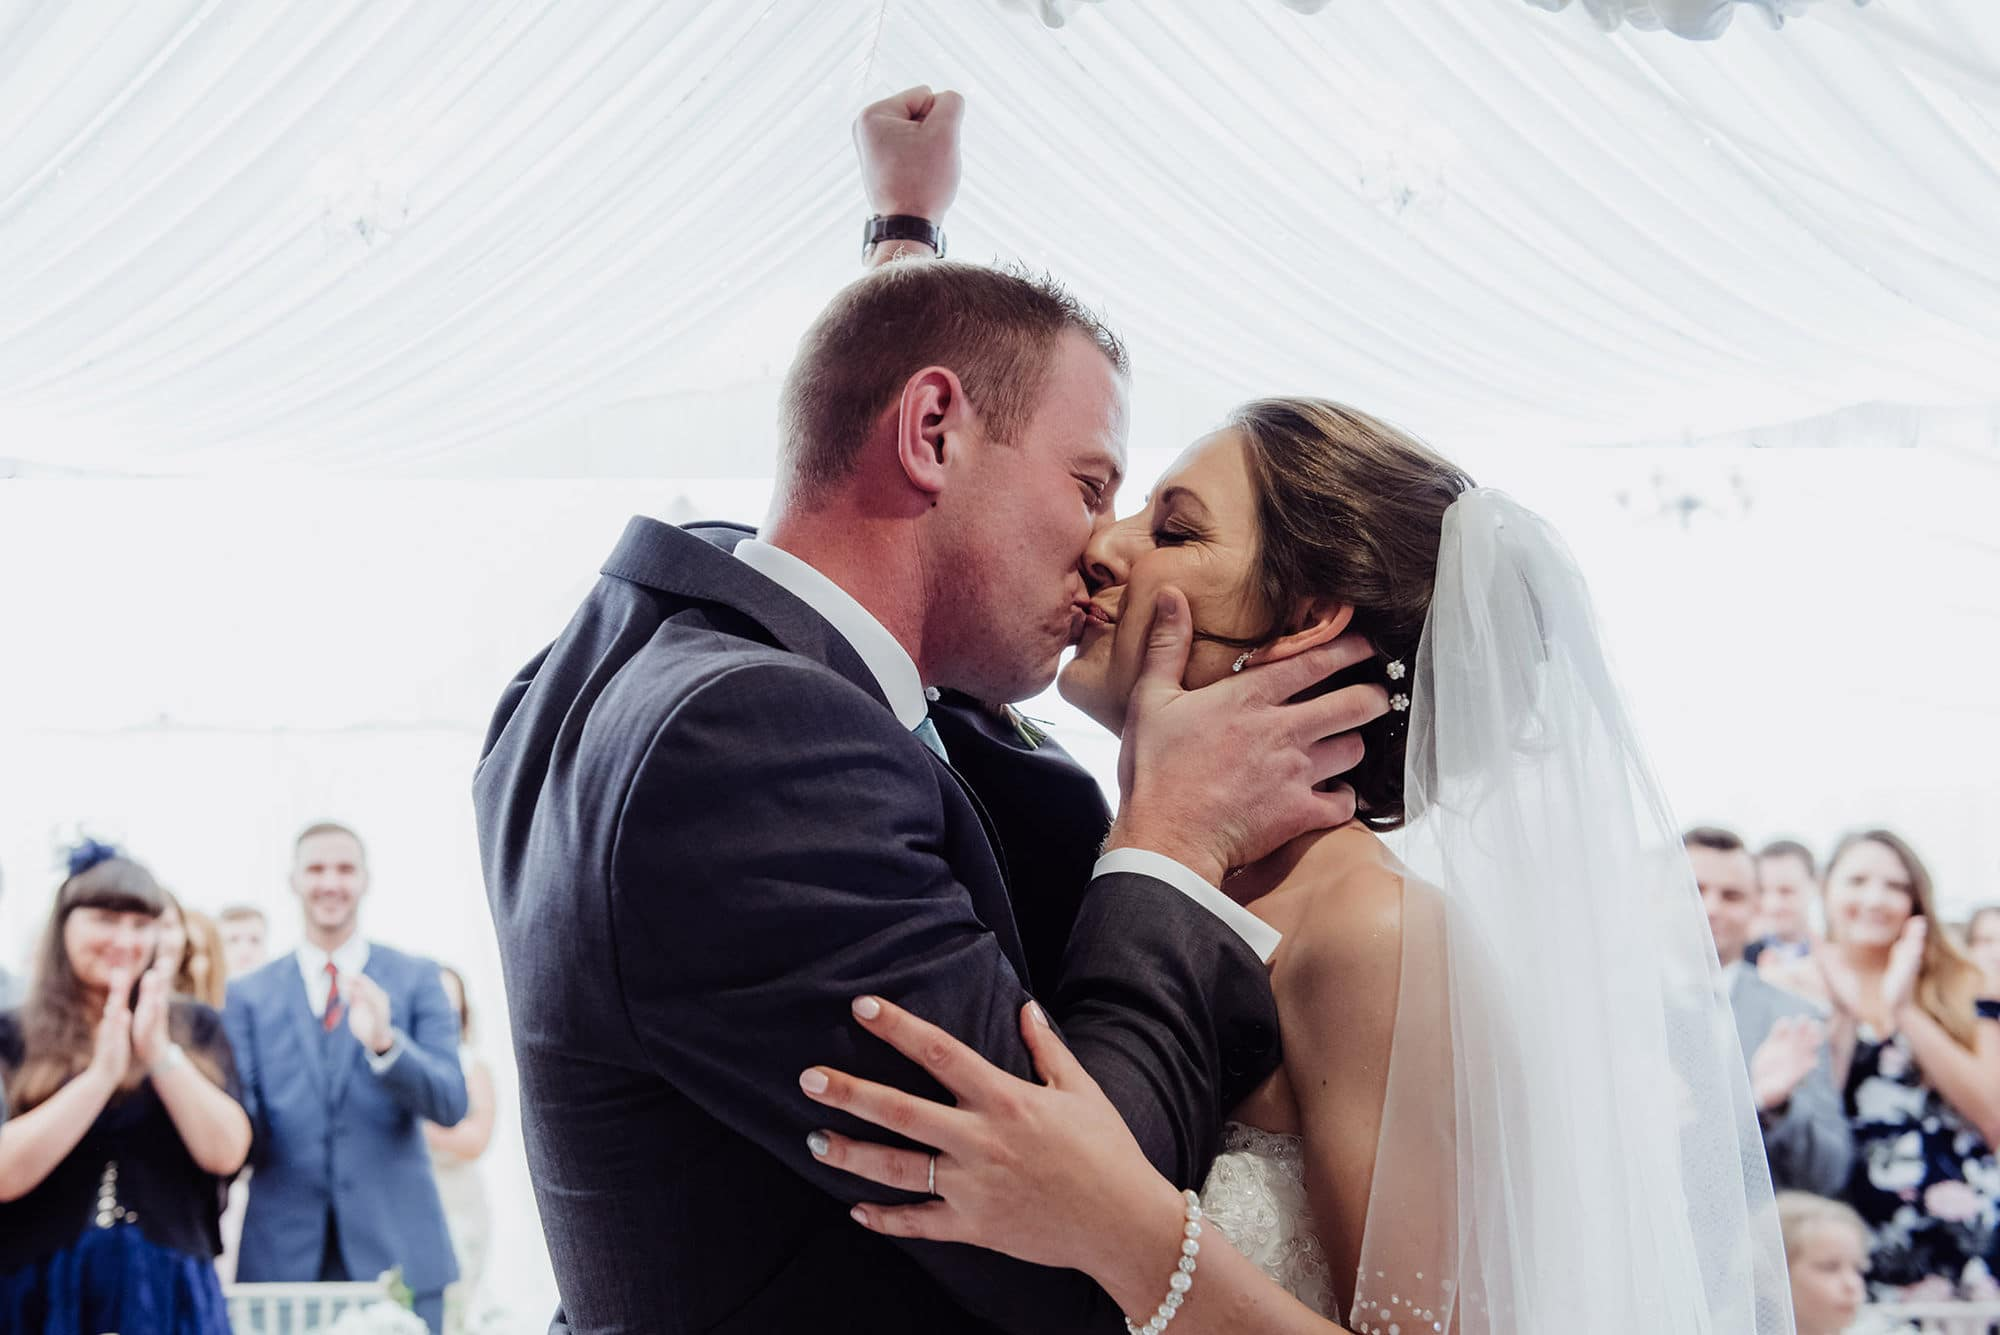 Wedding kiss with groom punching the air at the Cotswolds hotel wedding ceremony